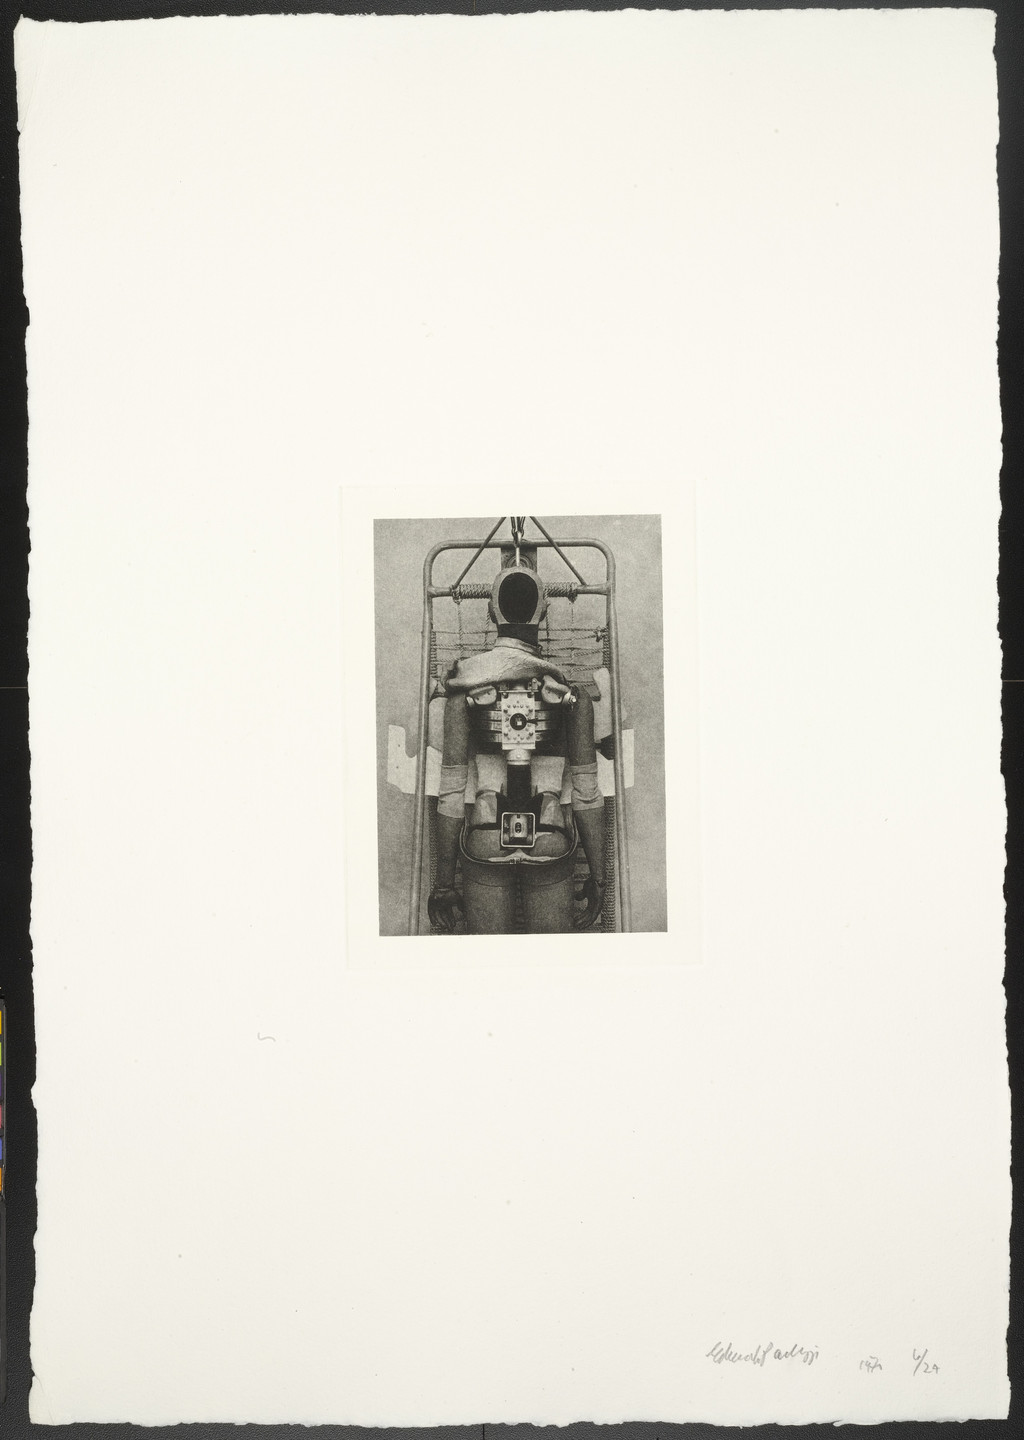 Eduardo Paolozzi. Untitled (Broken Open Dummy Skeleton) from The Conditional Probability Machine. 1970